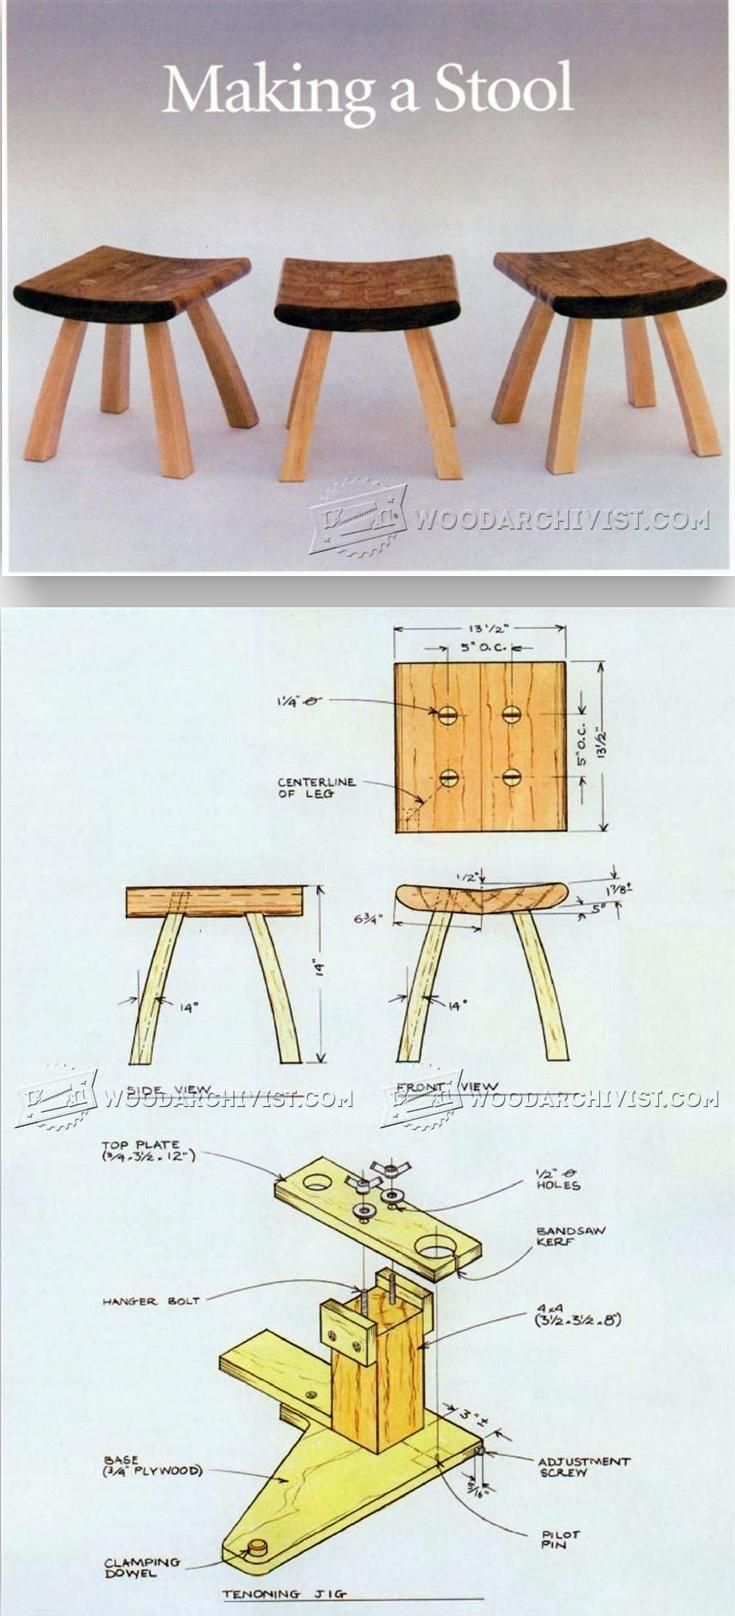 Professional flatpack assembly service professional crew of joiners - Small Stool Plans Furniture Plans And Projects Woodarchivist Com